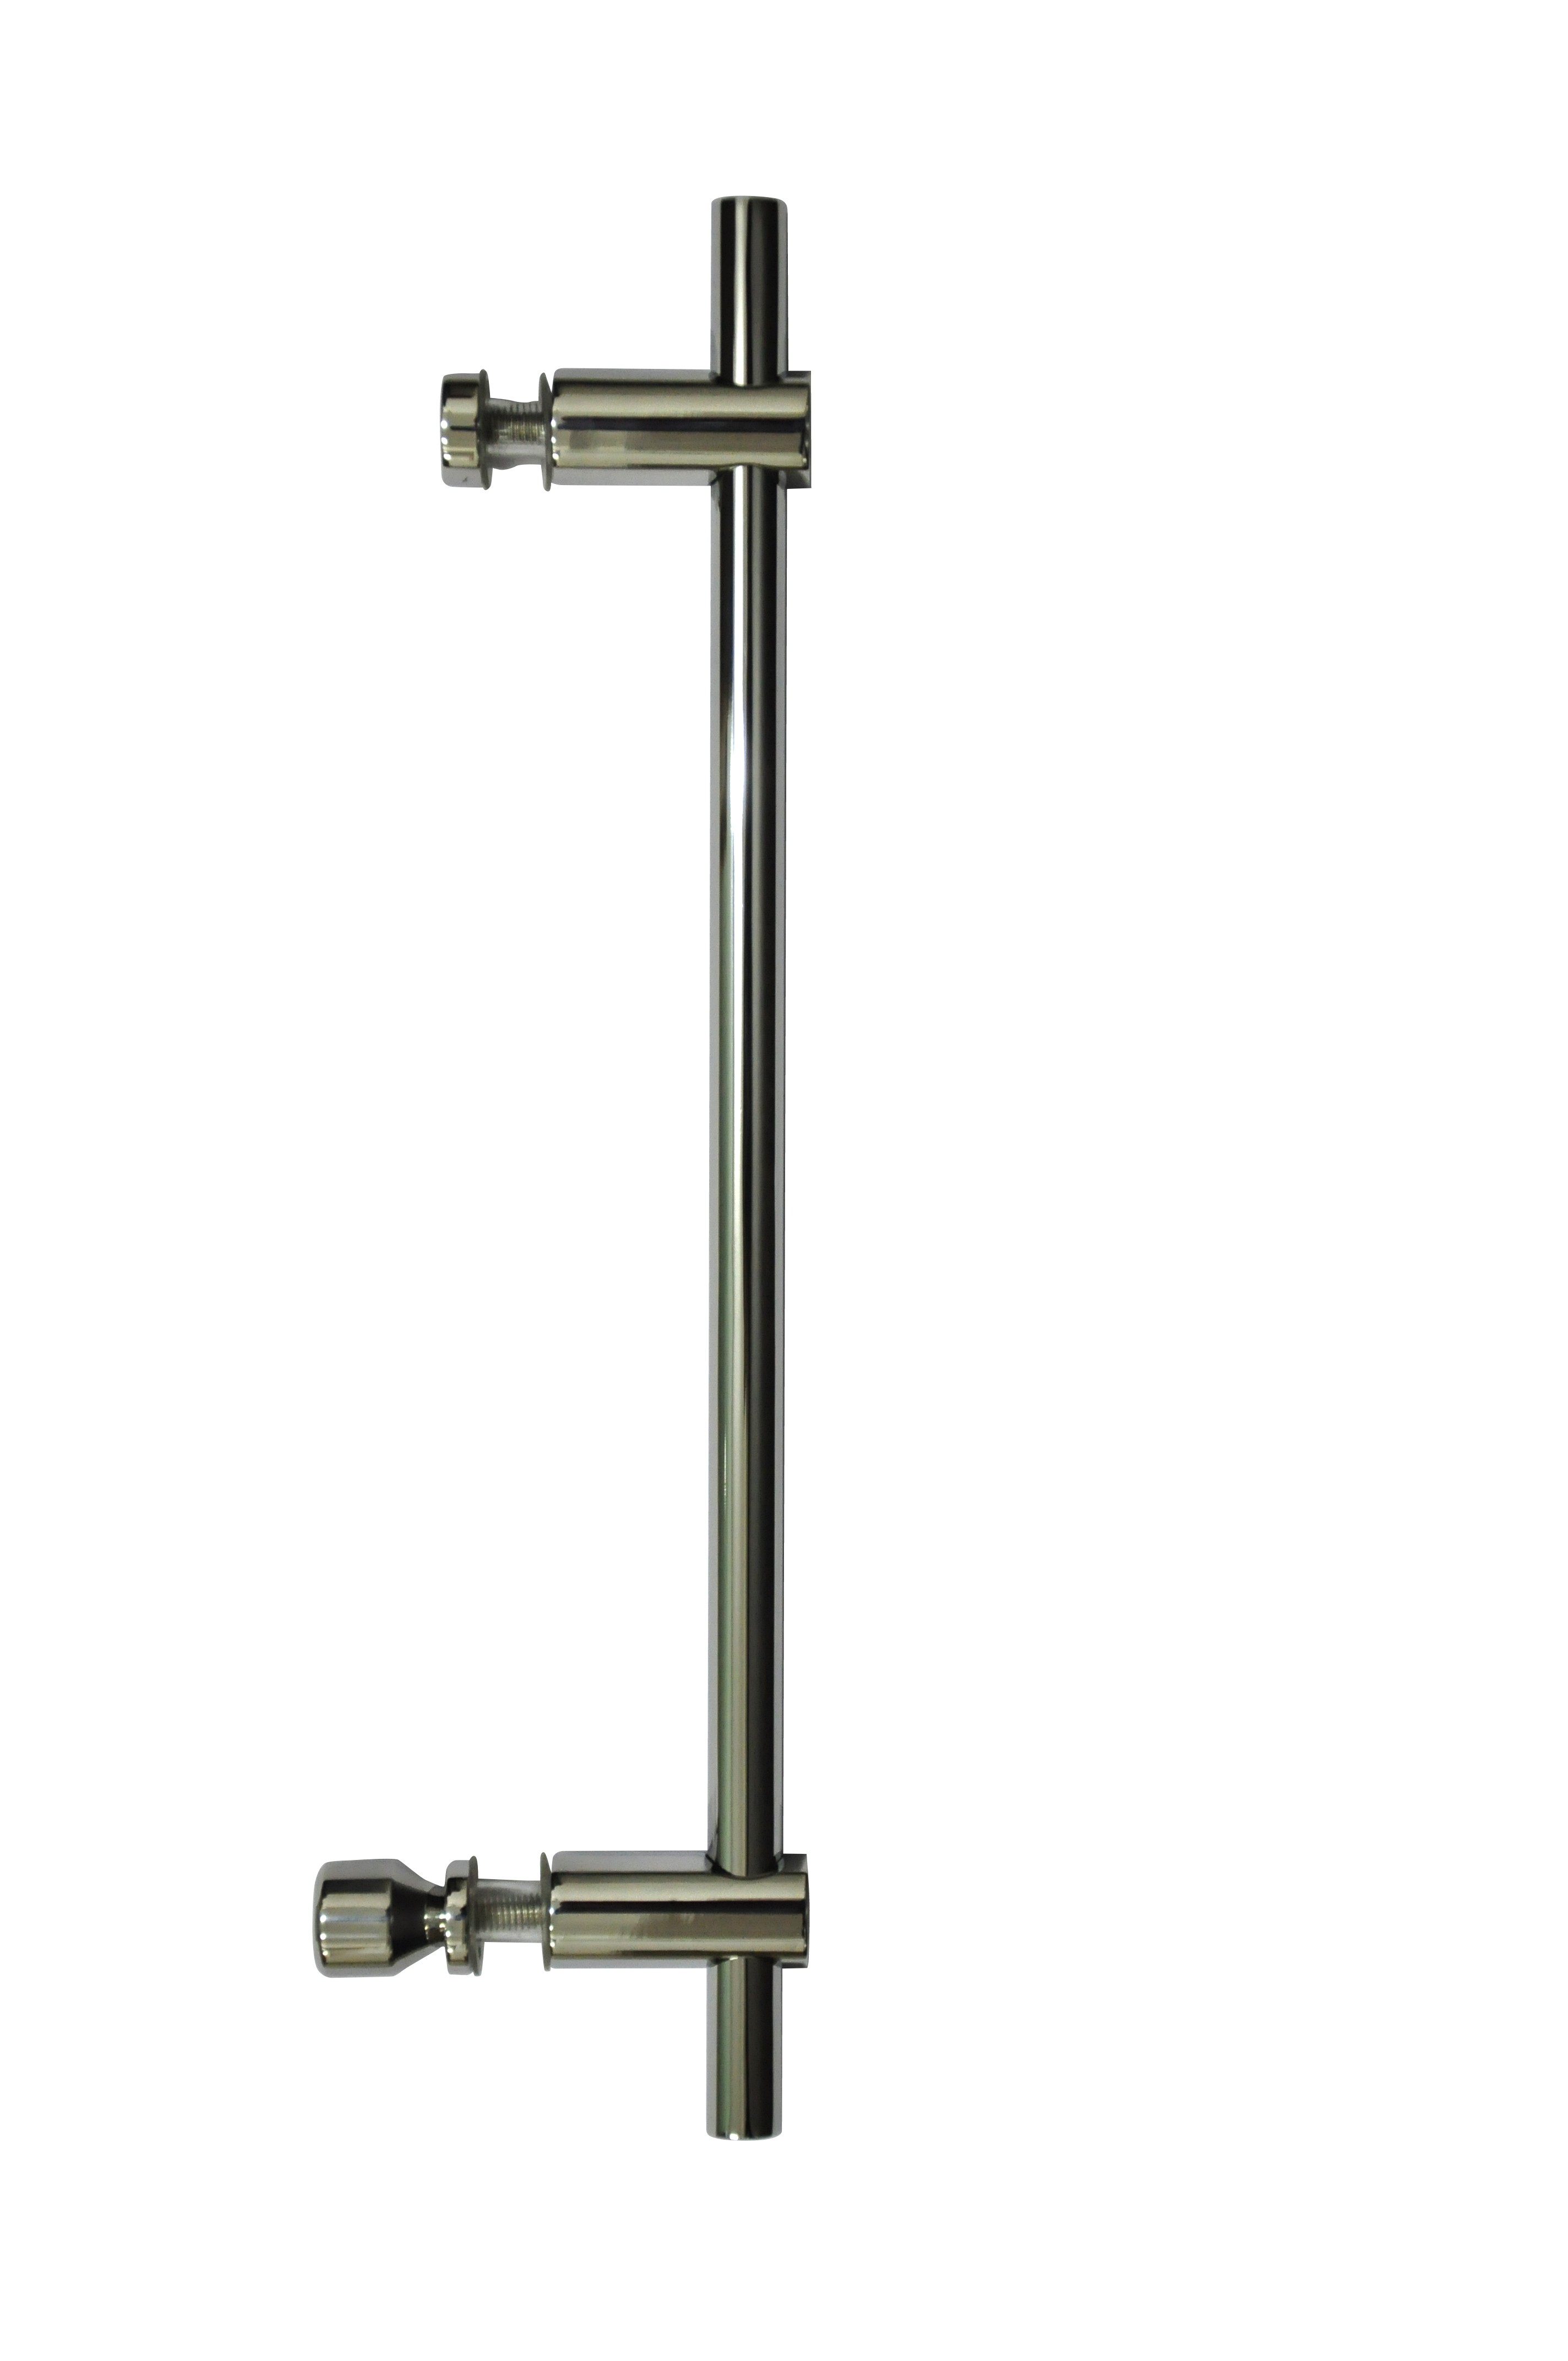 door lux chrome com handles faucet arm high unidoor shower includes stabilizing wide hinged clear handle dreamline glass x frameless with shdr